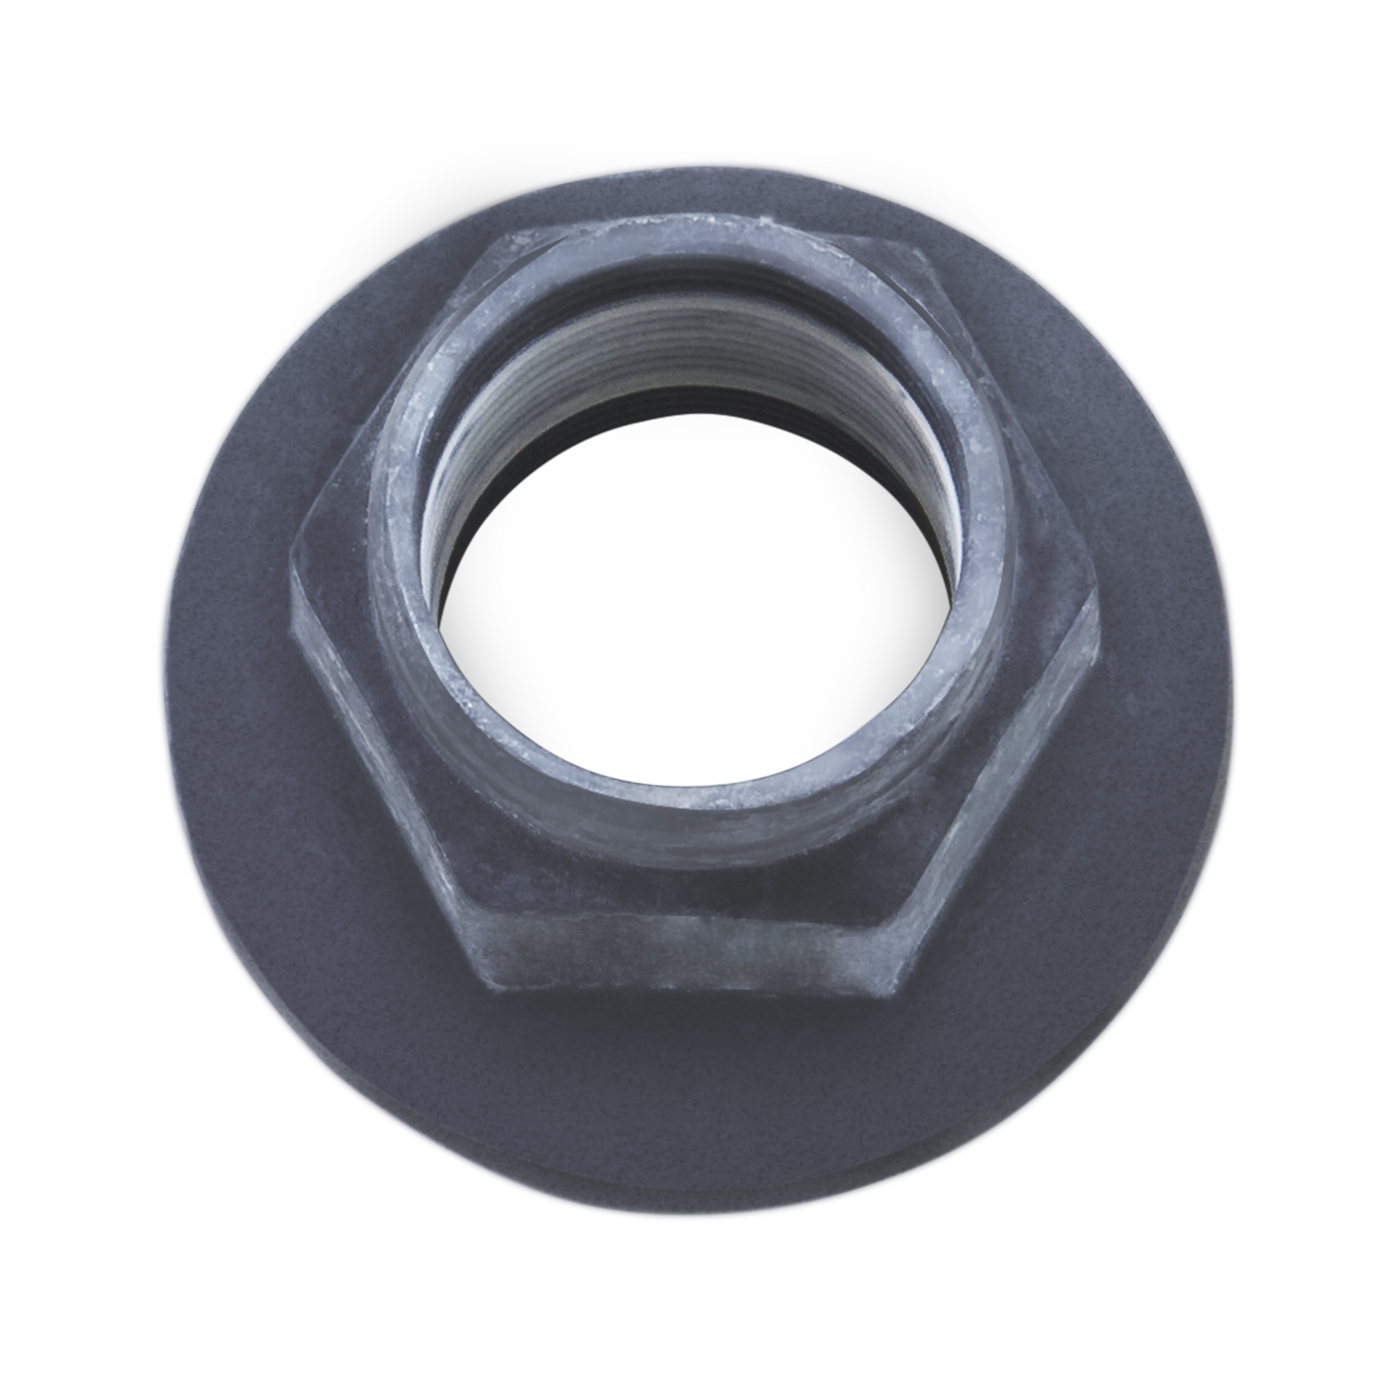 YSPPN-041 - Pinion nut for '15 & up Ford 8.8